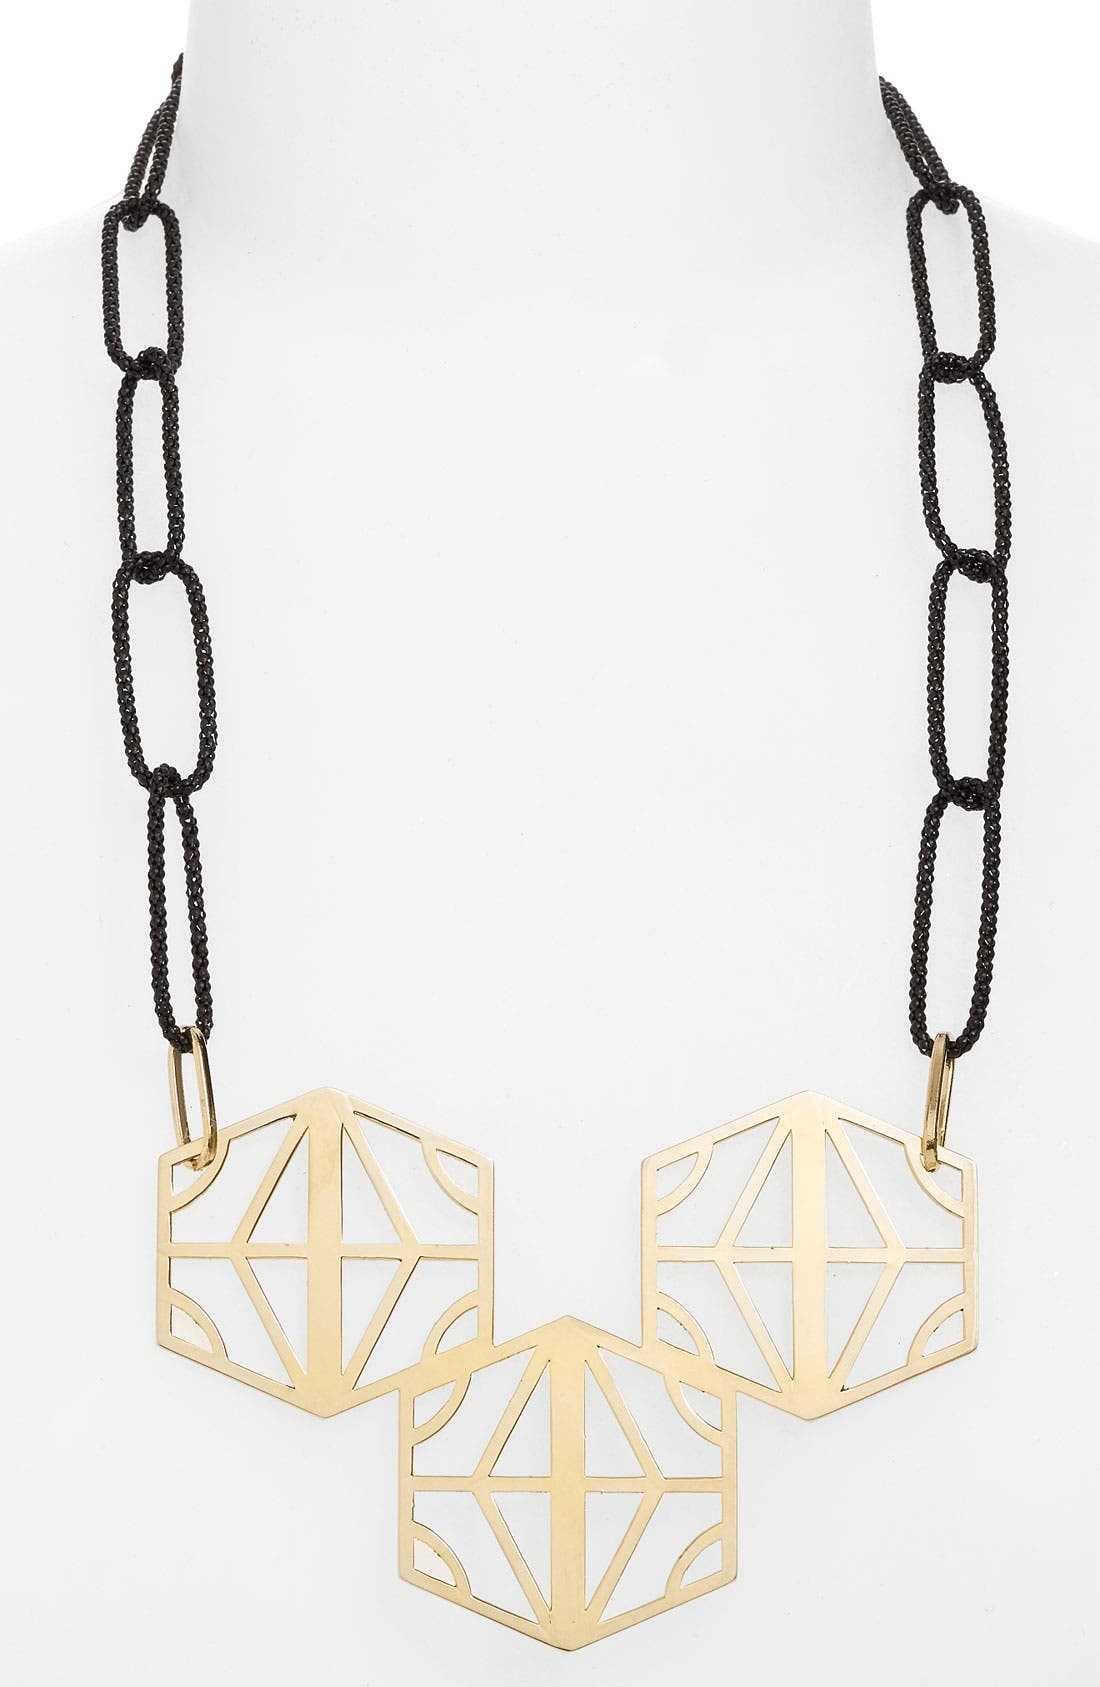 Alternate Image 1 Selected - Konstantina Plati Hexagon Statement Necklace